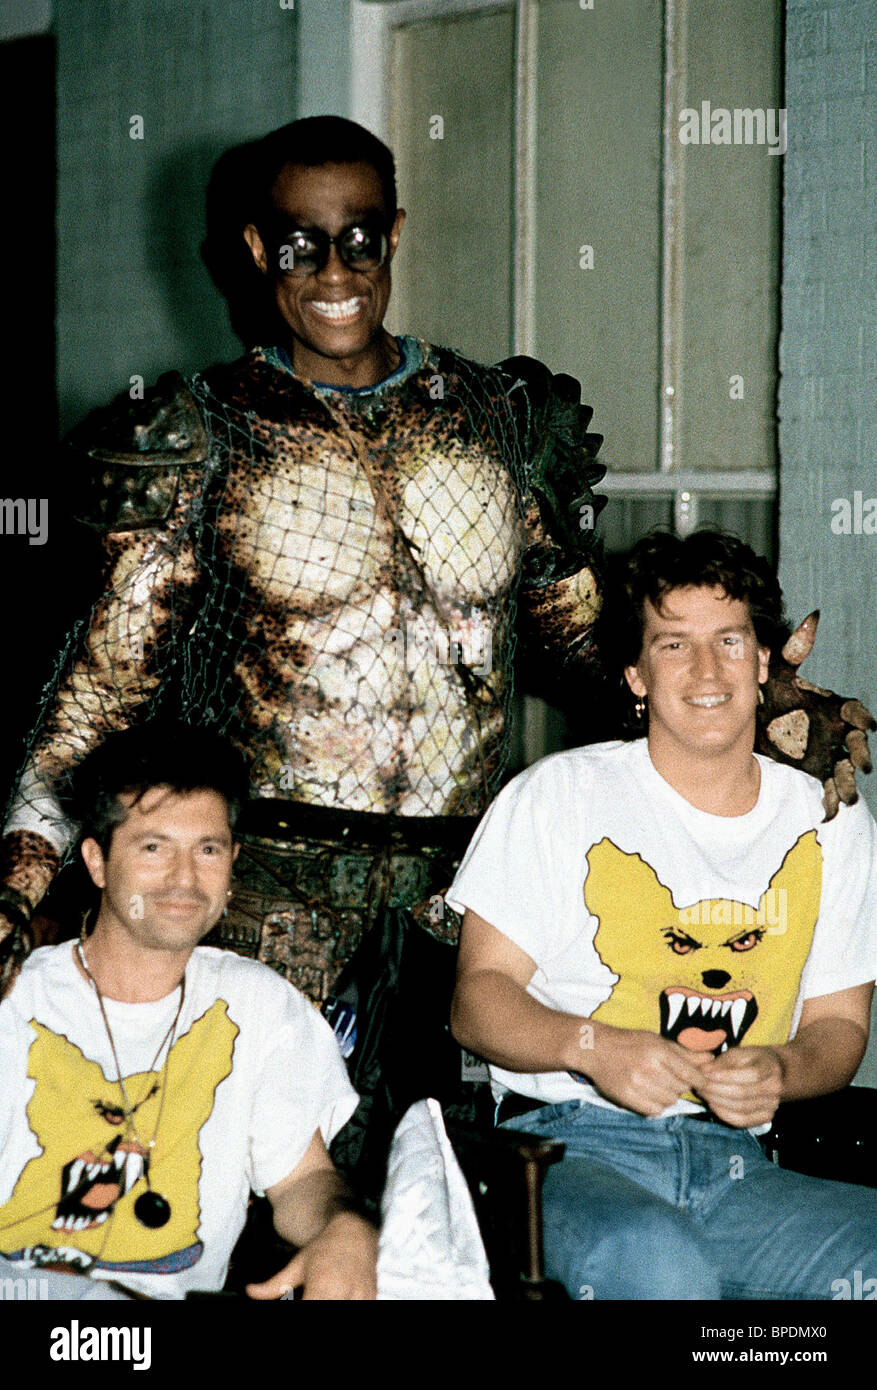 kevin peter hall alturakevin peter hall height, kevin peter hall death, kevin peter hall predator, kevin peter hall wedding, kevin peter hall height weight, kevin peter hall interview, kevin peter hall wiki, kevin peter hall, kevin peter hall photos, kevin peter hall how tall, kevin peter hall predator 2, kevin peter hall dead, kevin peter hall pictures, kevin peter hall net worth, kevin peter hall imdb, kevin peter hall car accident, kevin peter hall how did he die, kevin peter hall died, kevin peter hall altura, kevin peter hall aids